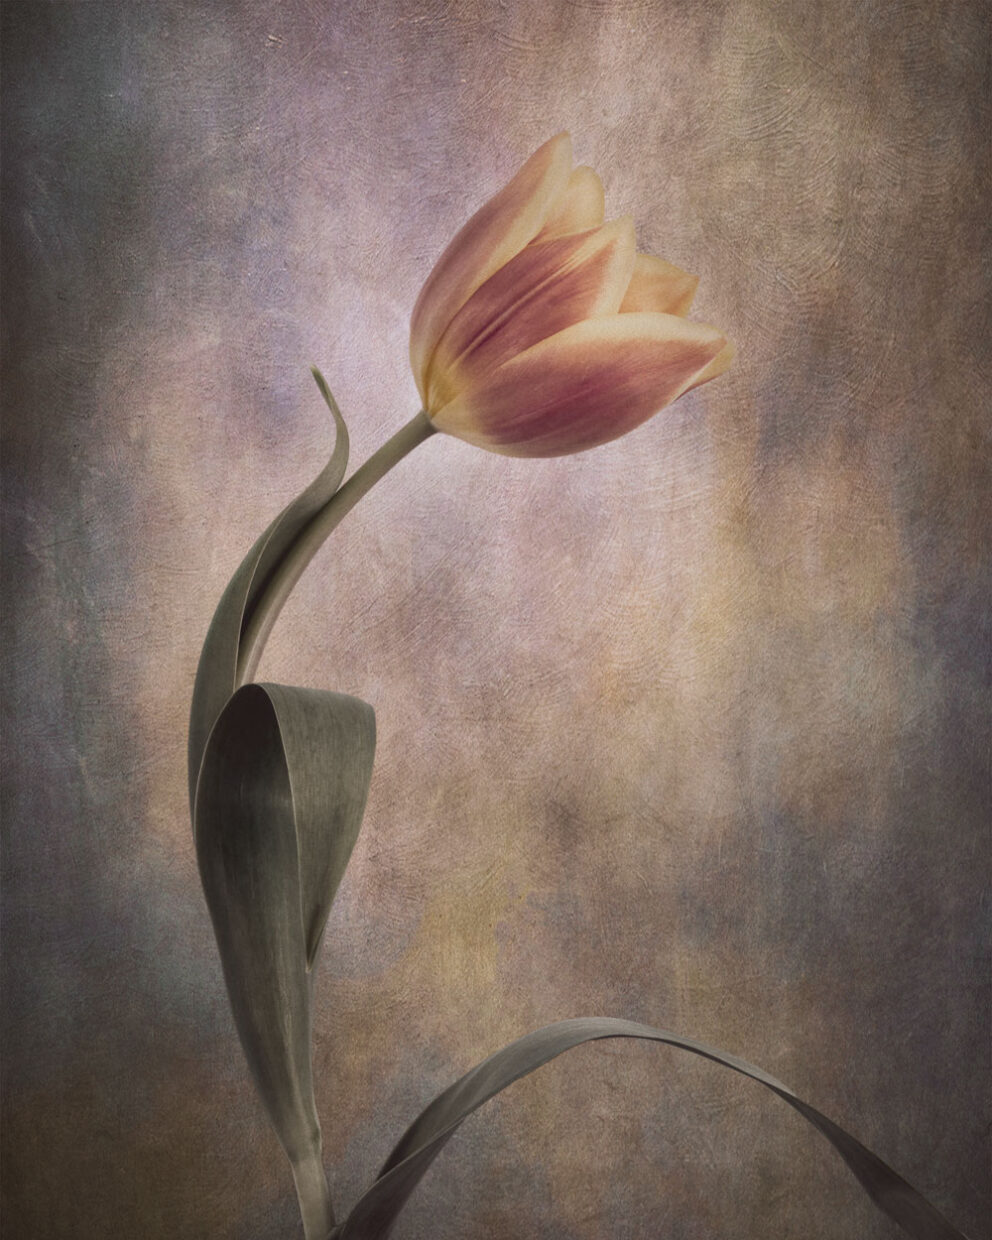 tulip flower - floral art images available as prints